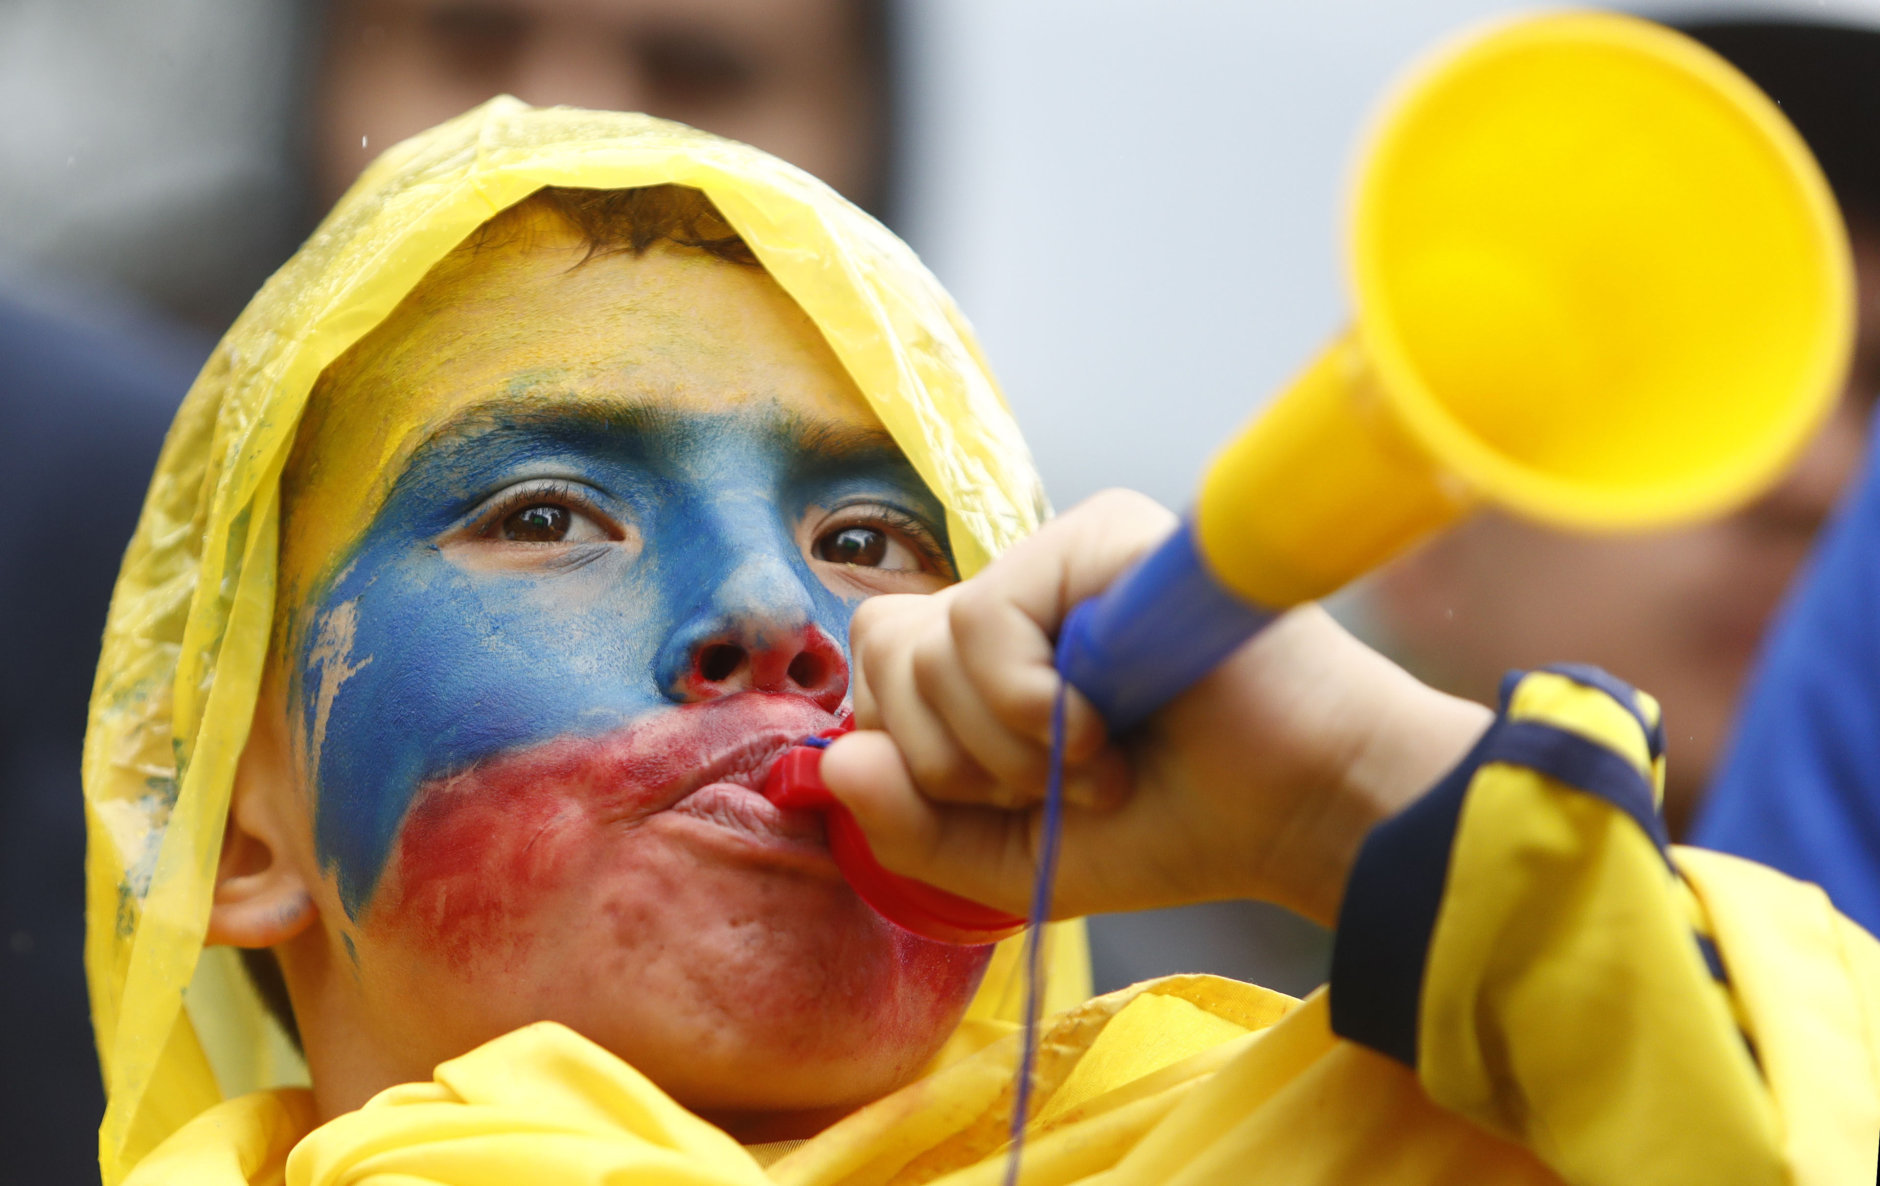 A Colombia soccer fan watches an outdoor live telecast of the group H match between Senegal and Colombia, at the 2018 soccer World Cup, in Bogota, Colombia, Thursday, June 28, 2018. (AP Photo/Daniel Munoz)